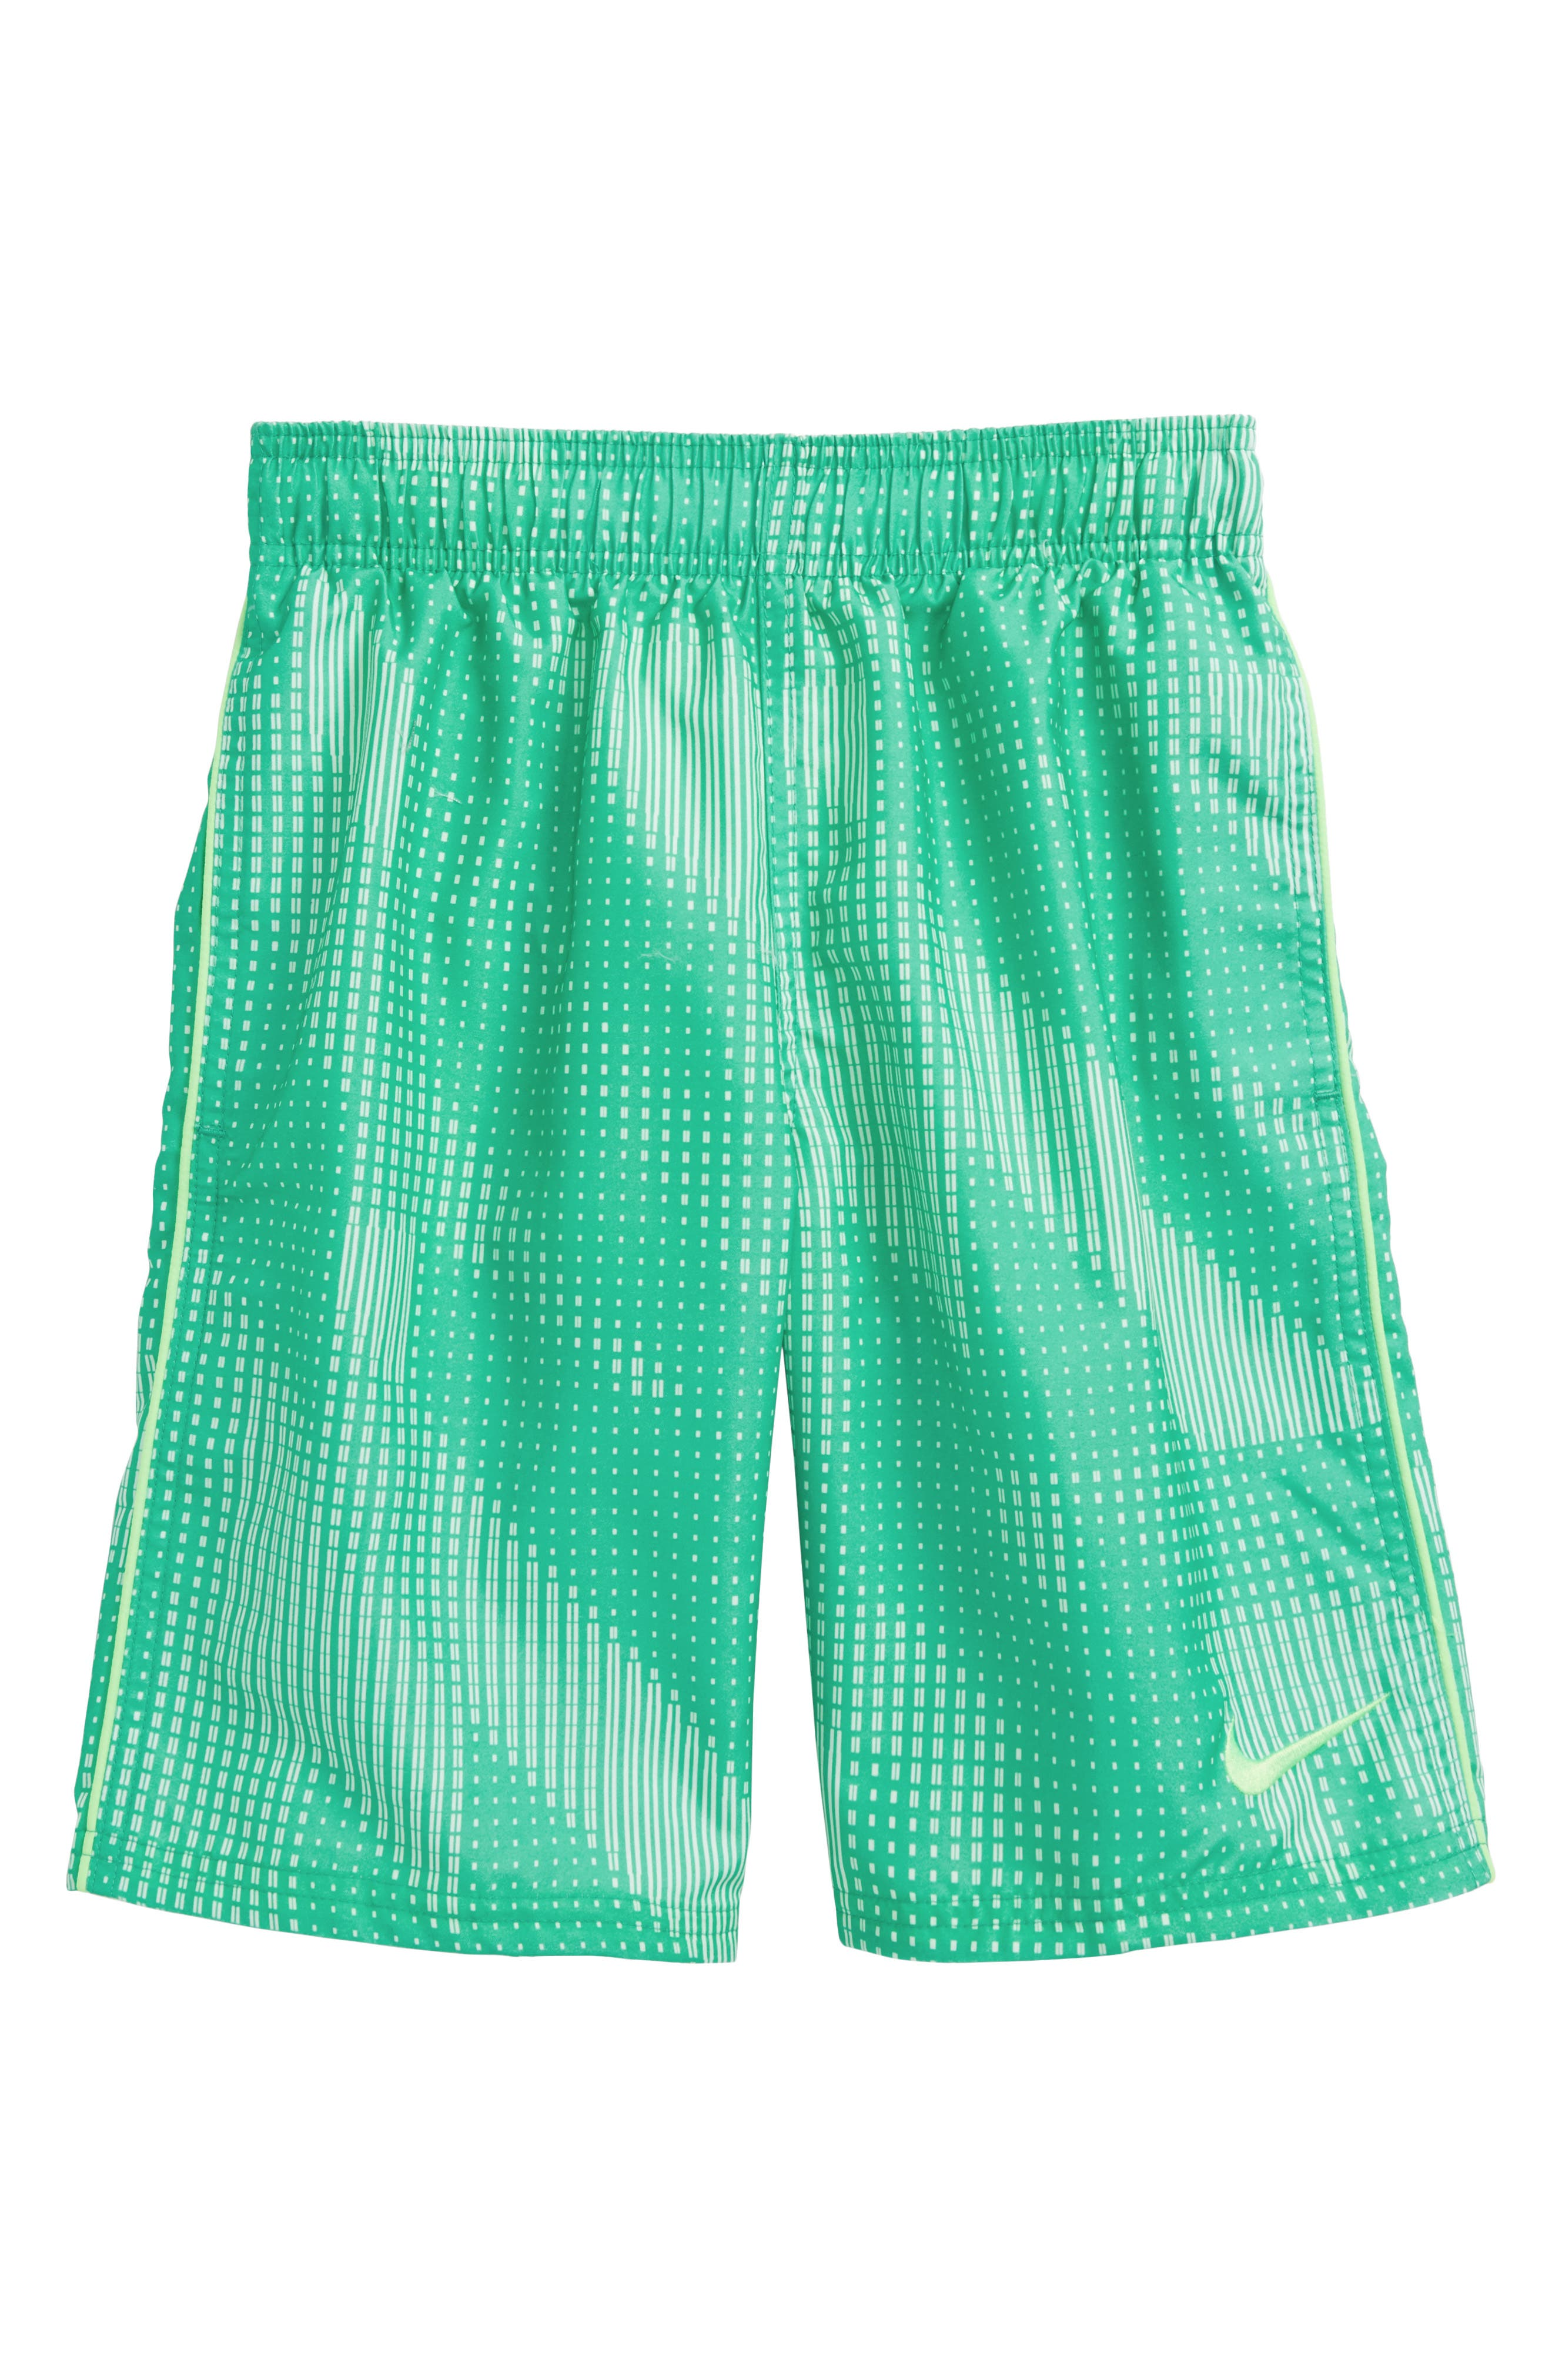 Diverge Volley Shorts,                         Main,                         color, Green Strike